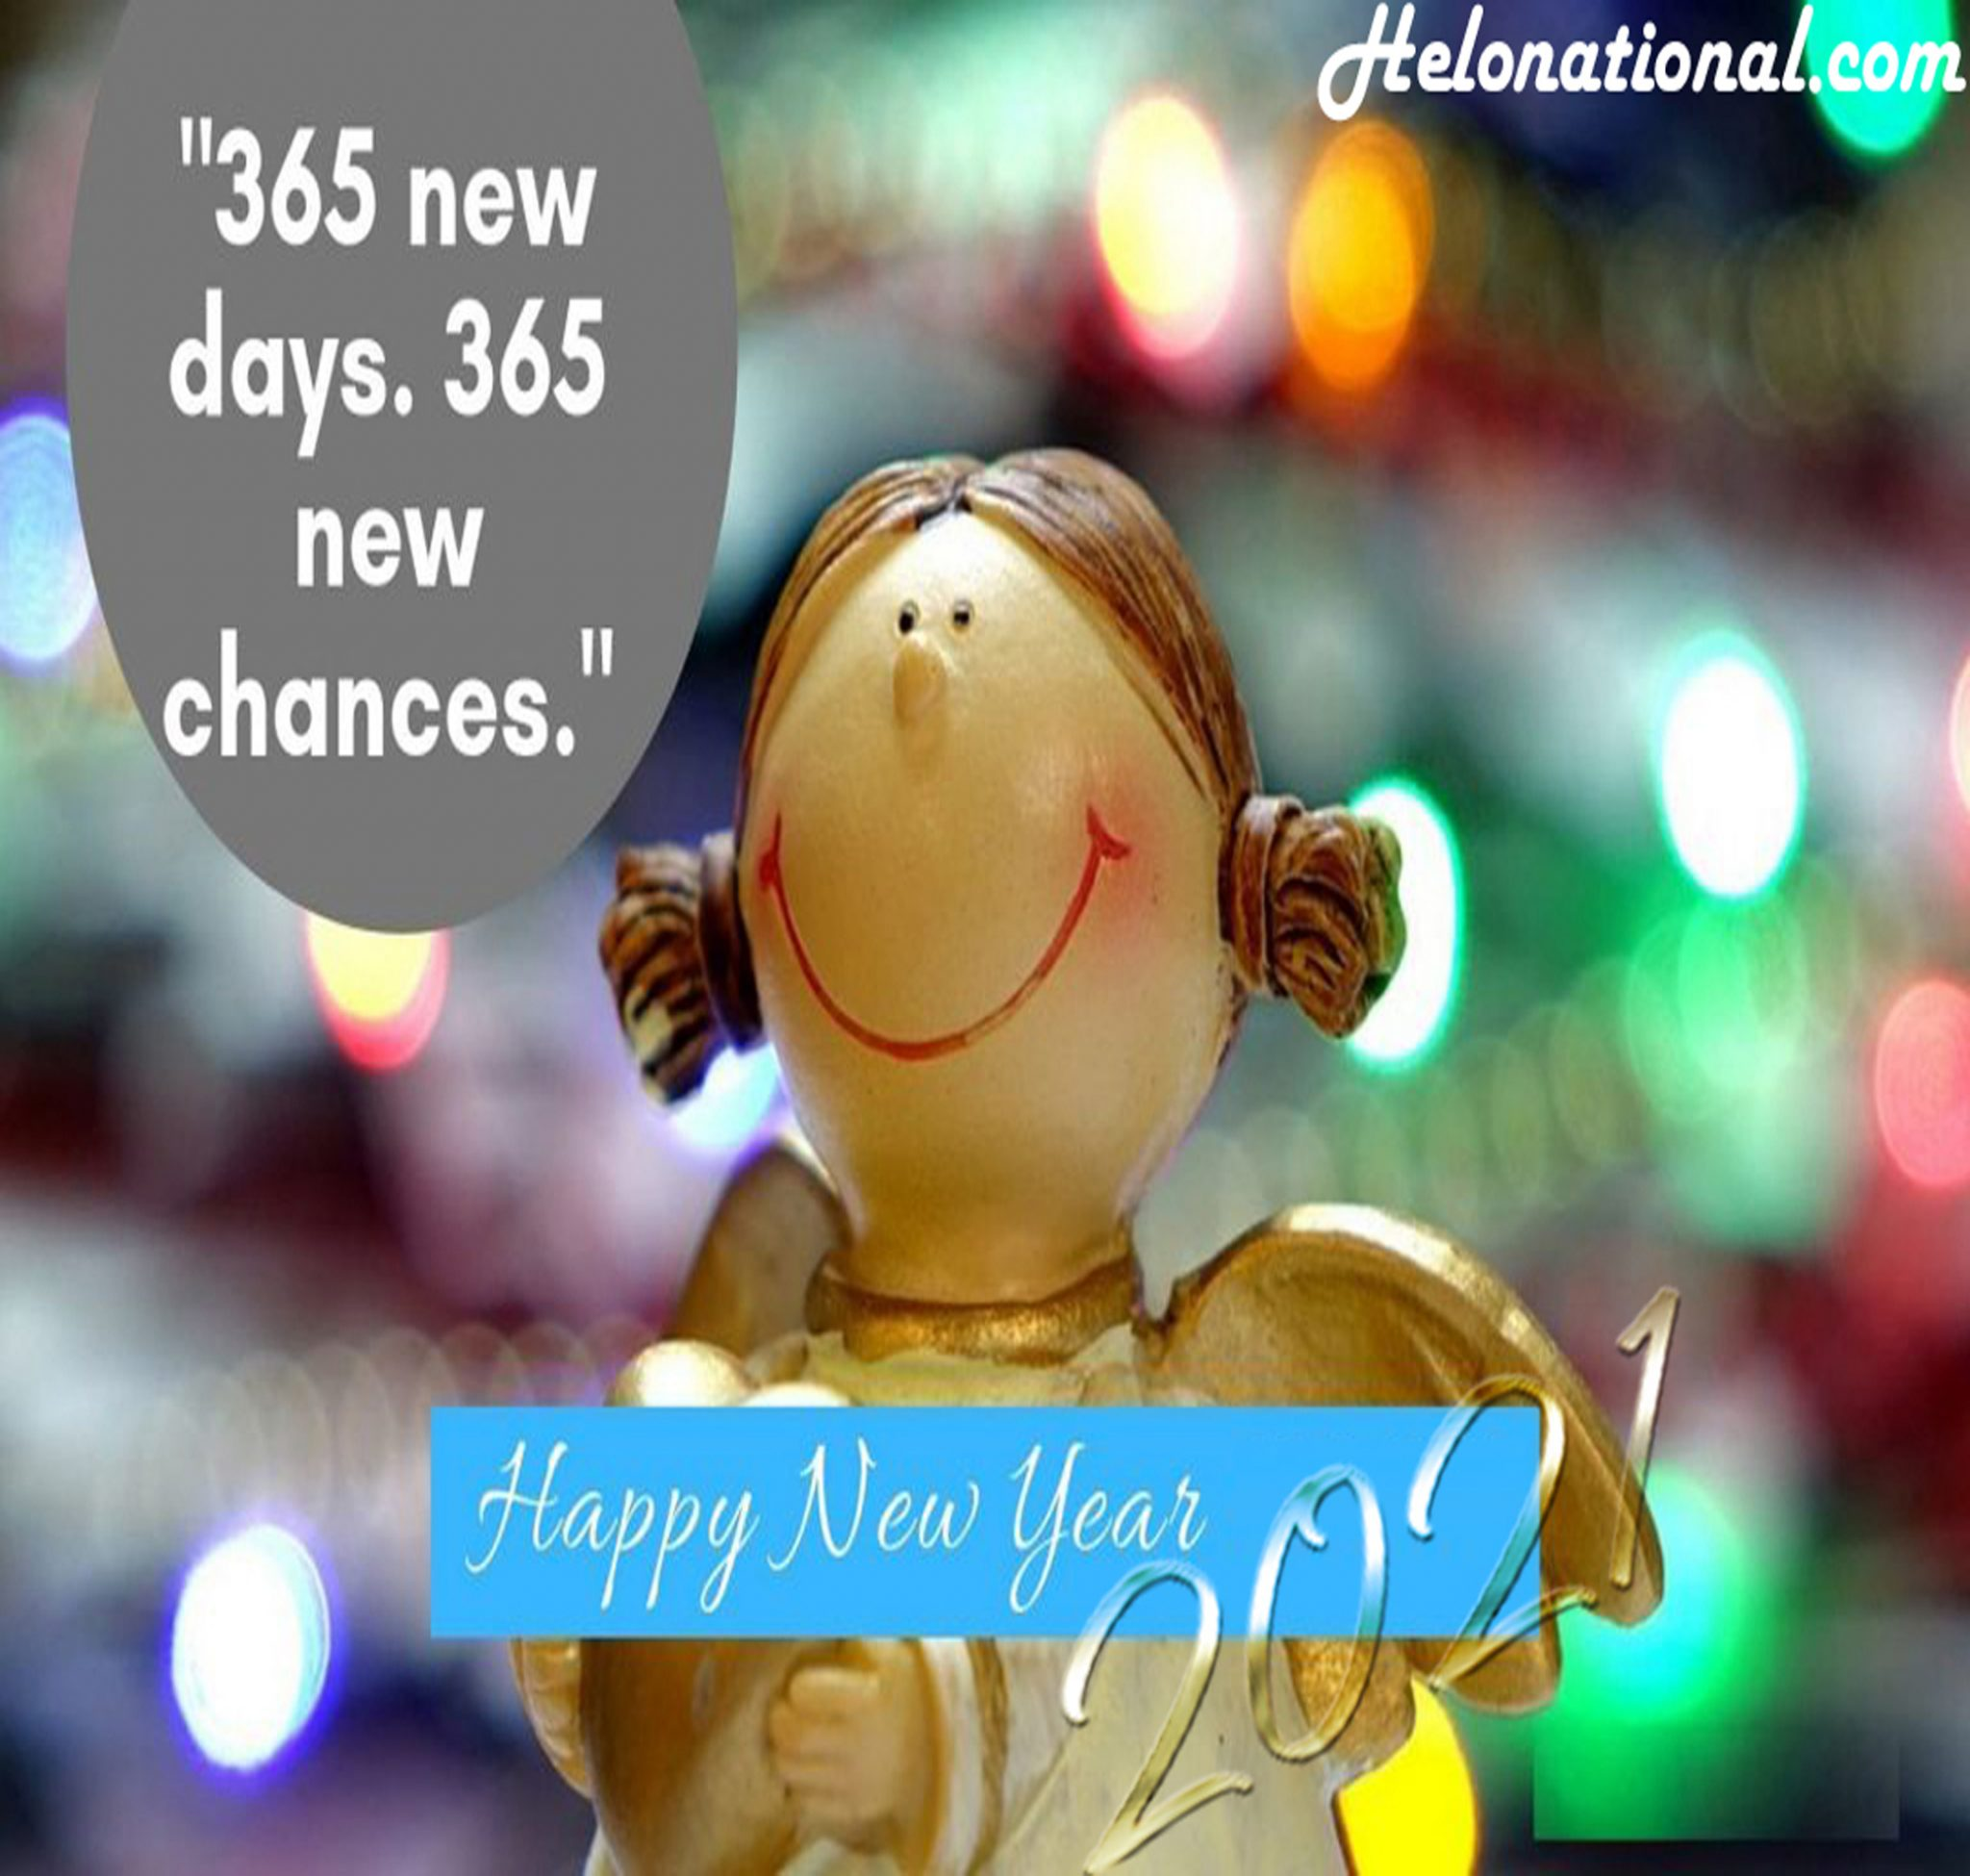 hny 2021 beautiful quotes images